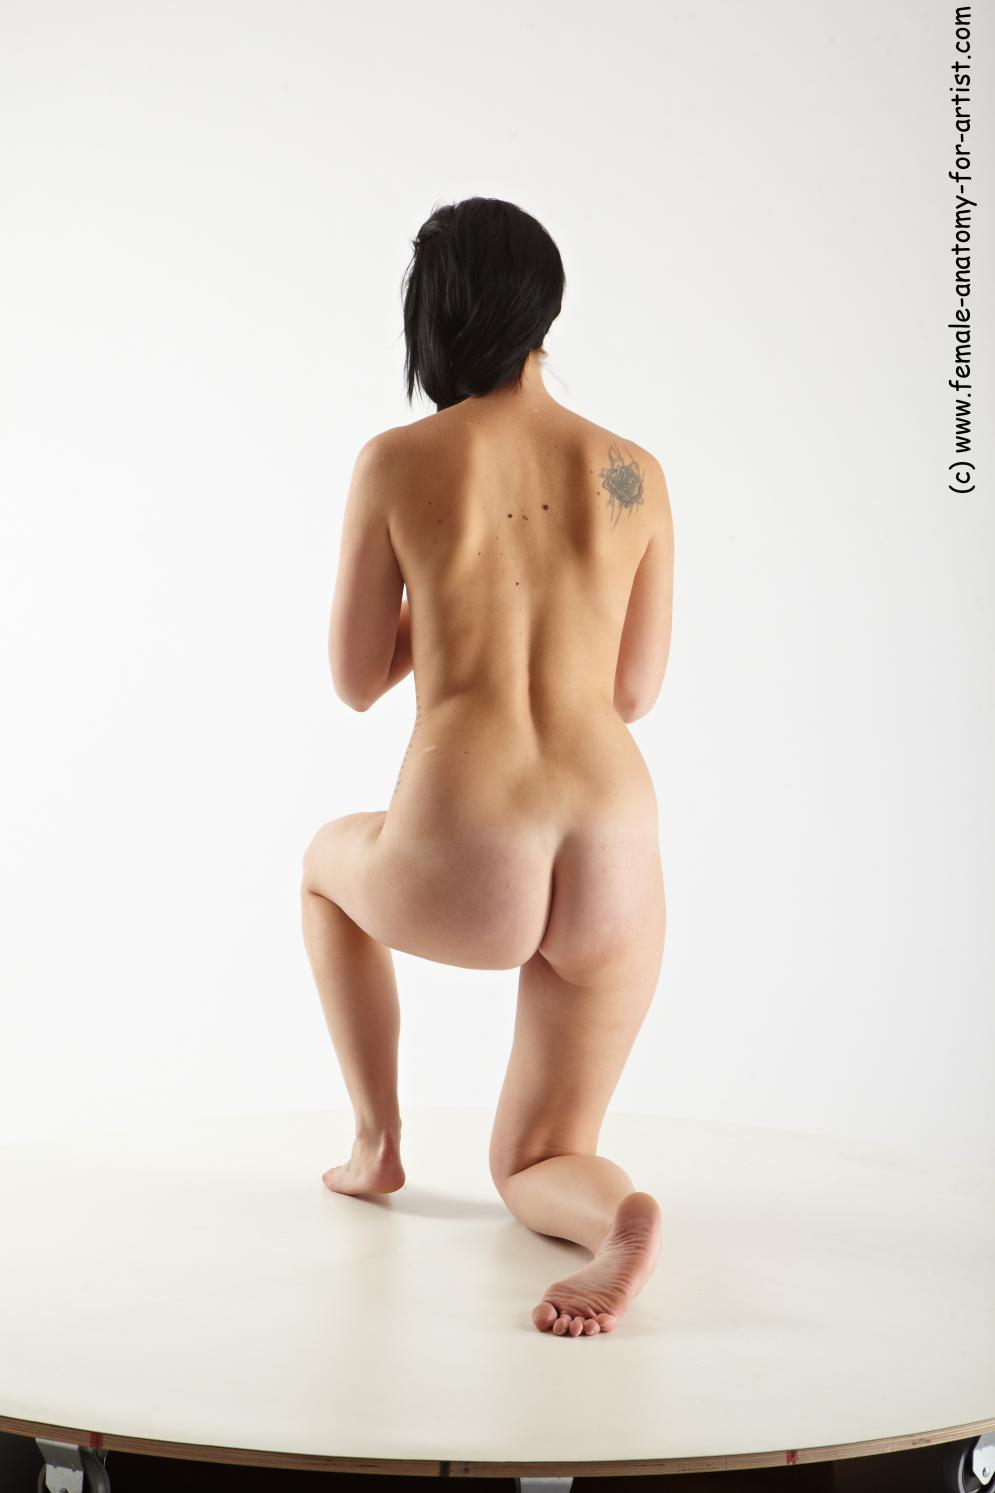 Image from Female-Anatomy-for-Artists.com - martina_kneeling_04.jpg